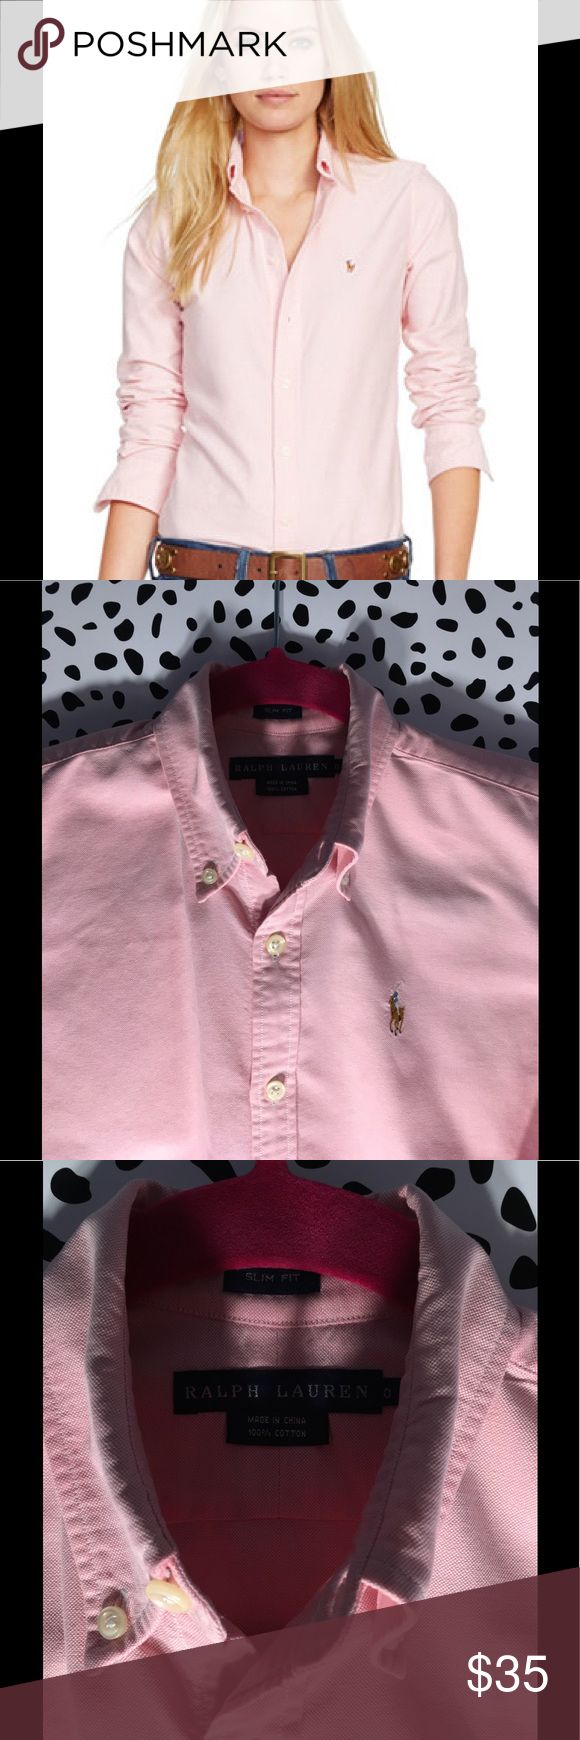 "Polo Ralph Lauren Slim Fit Long-Sleeve Oxford Pink Only wore twice. In good condition - has been dry cleaned already!  ------ Polo Ralph Lauren's polished slim-fitting shirt is crafted from washed cotton oxford and designed with Ralph Lauren's multicolored signature embroidered pony at the left chest. ------- Slim Fit: Ralph Lauren's trimmest silhouette with stretch. Size medium has a 27¾"" front body length, a 27¼"" back body length, and a 32¼"" sleeve length. Back body length and sleeve…"